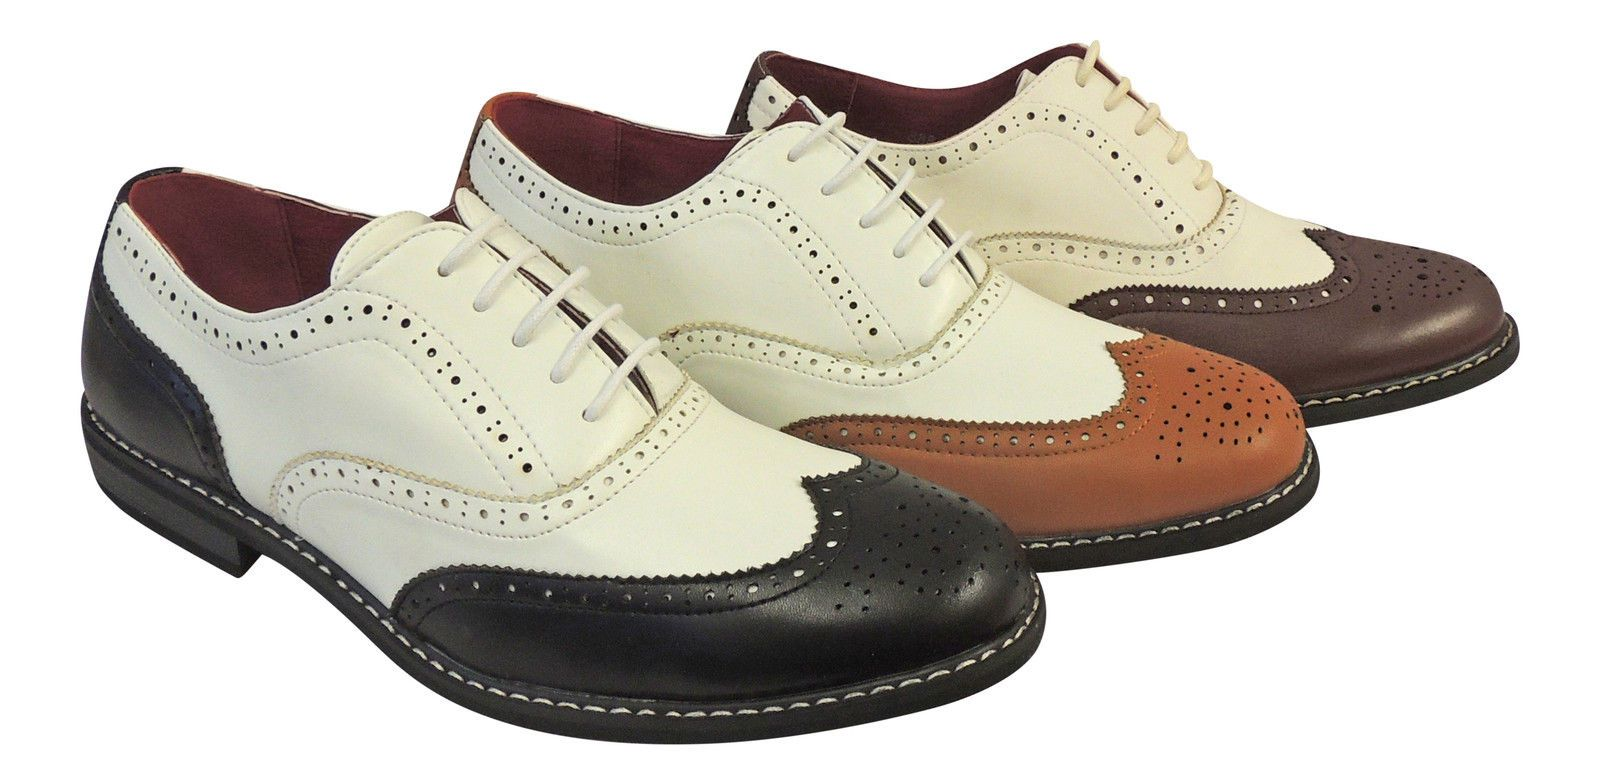 san francisco official site factory outlet Vintage 1920 s 30 s 40 s mens Two Tone Wing tip Spectator Jazz ...